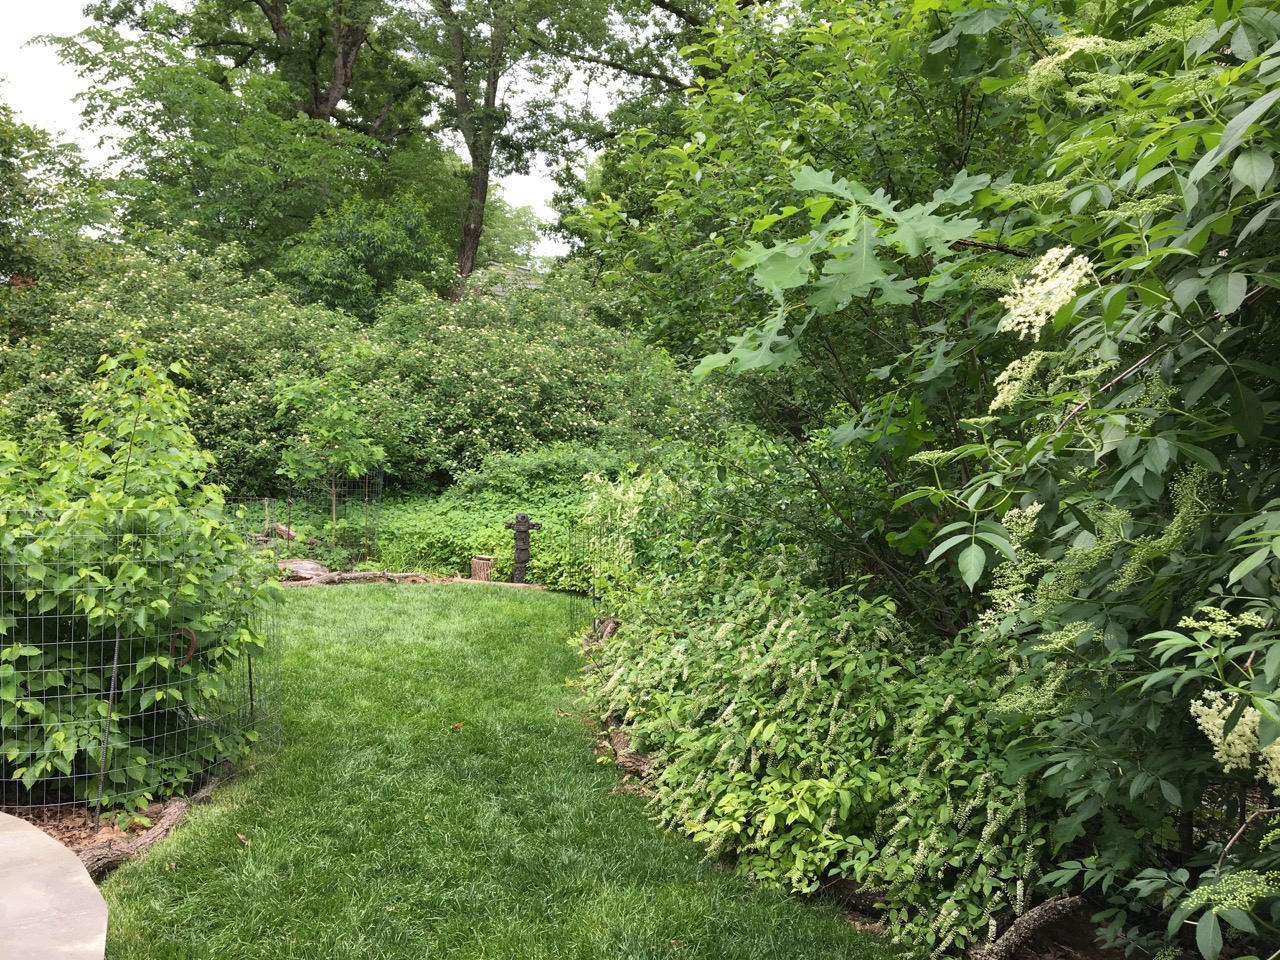 humane gardener cultivating compassion for all creatures great